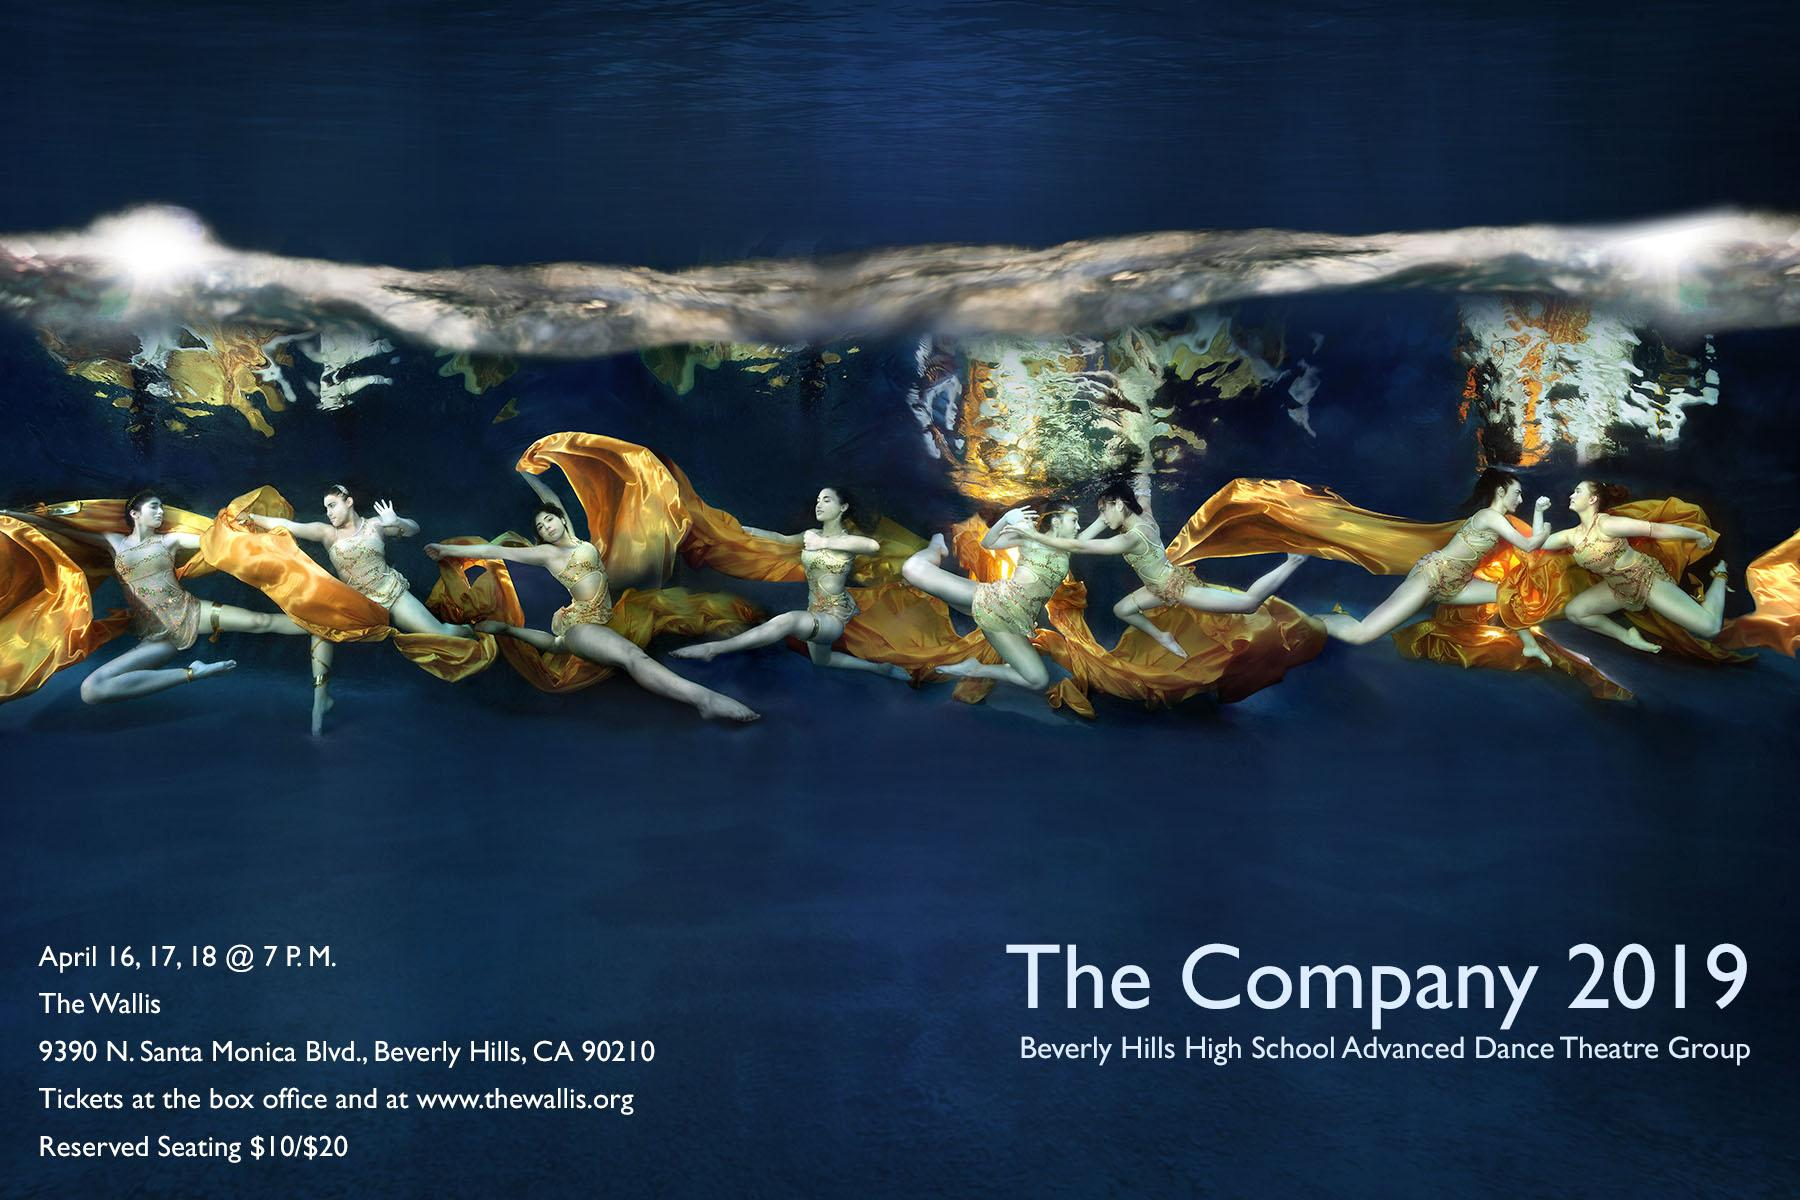 The Company 2019 Flyer